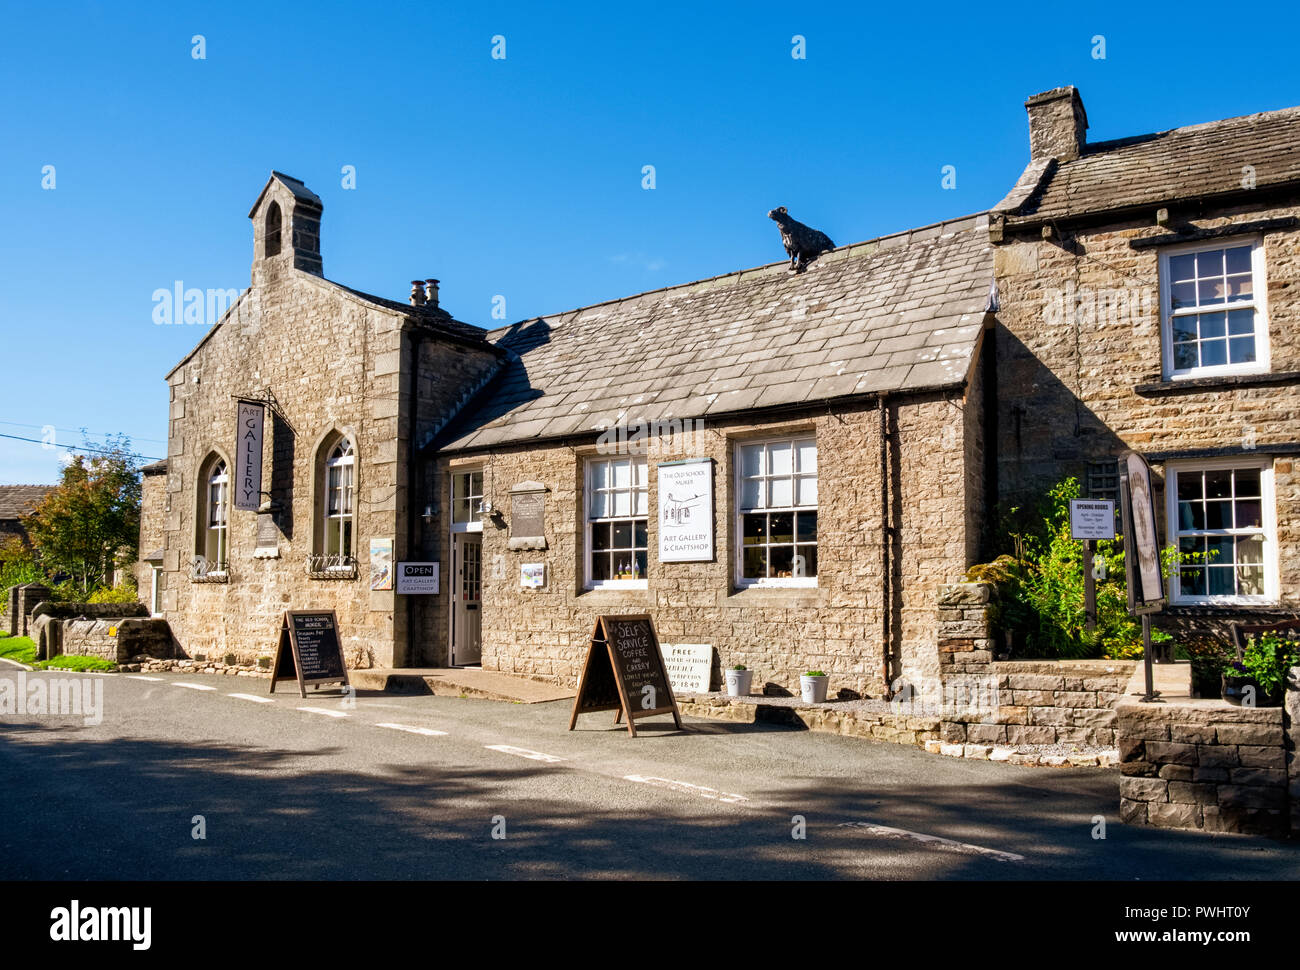 Old School Art Gallery and Craft Shop in Muker village in the Yorkshire Dales, North Yorkshire - Stock Image